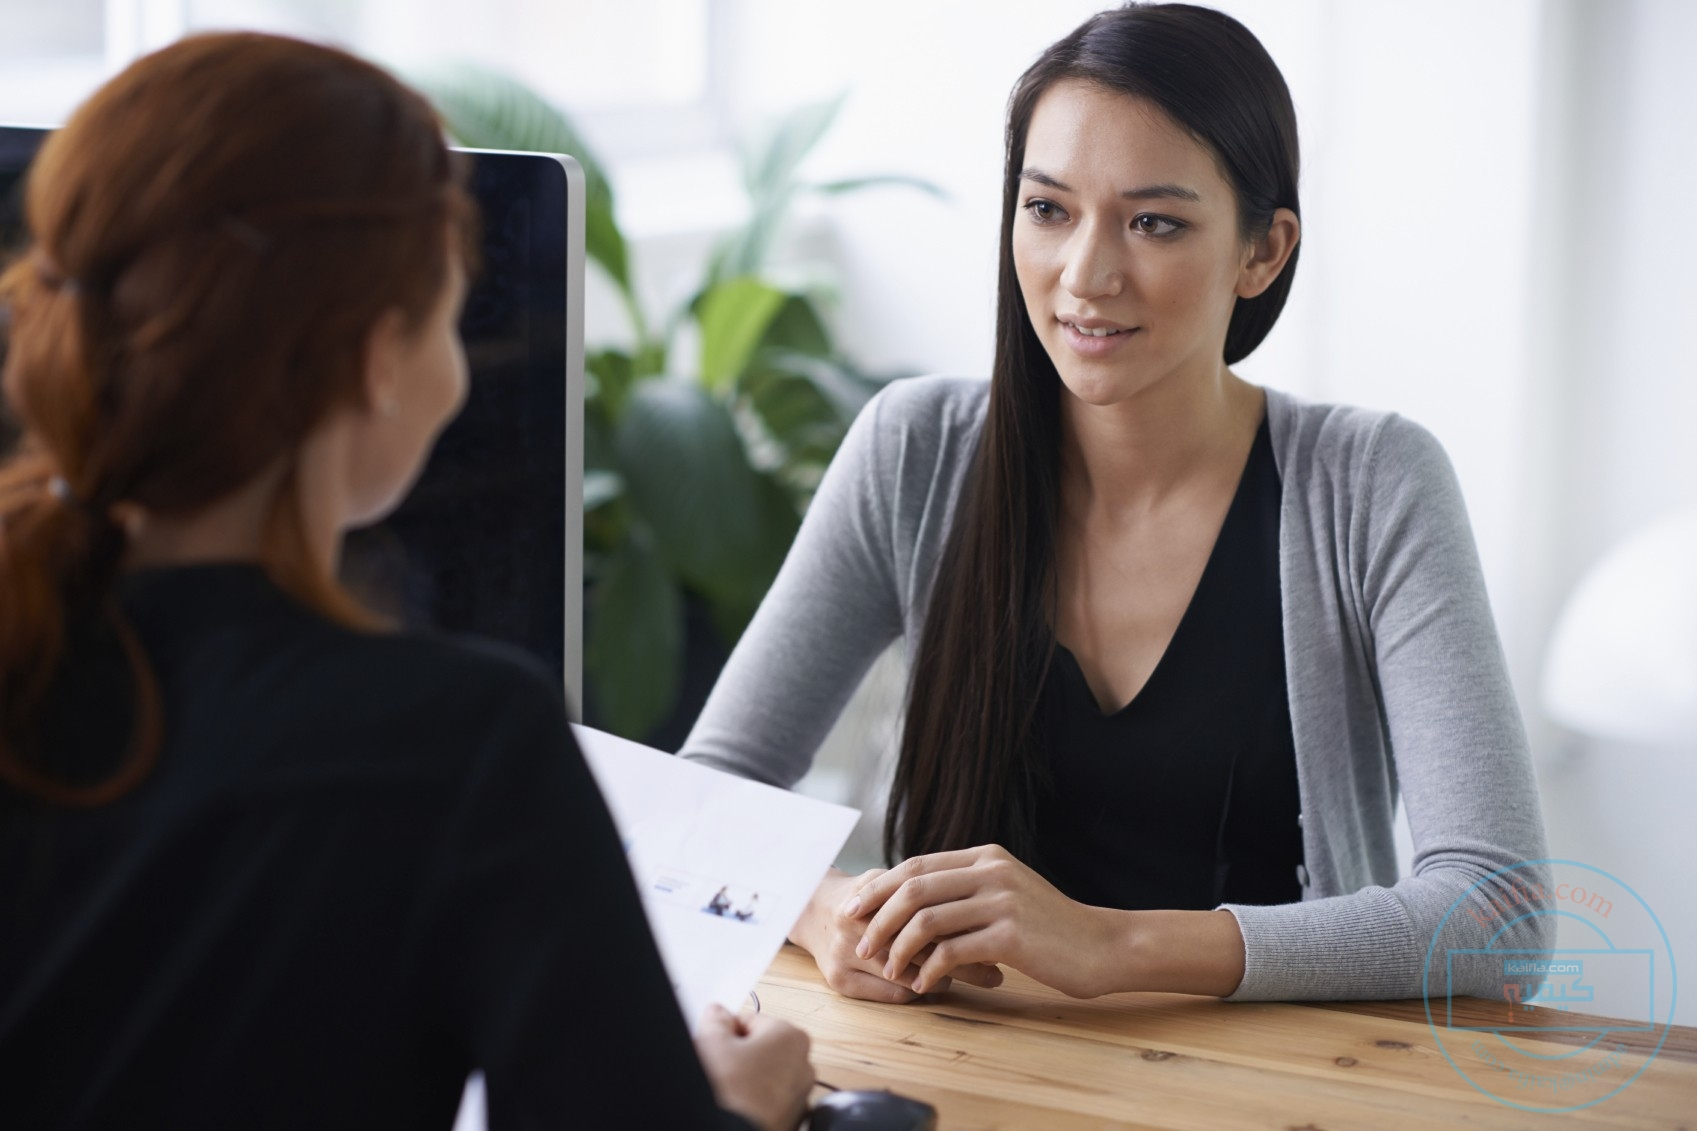 5 ways to improve your relationship with your boss